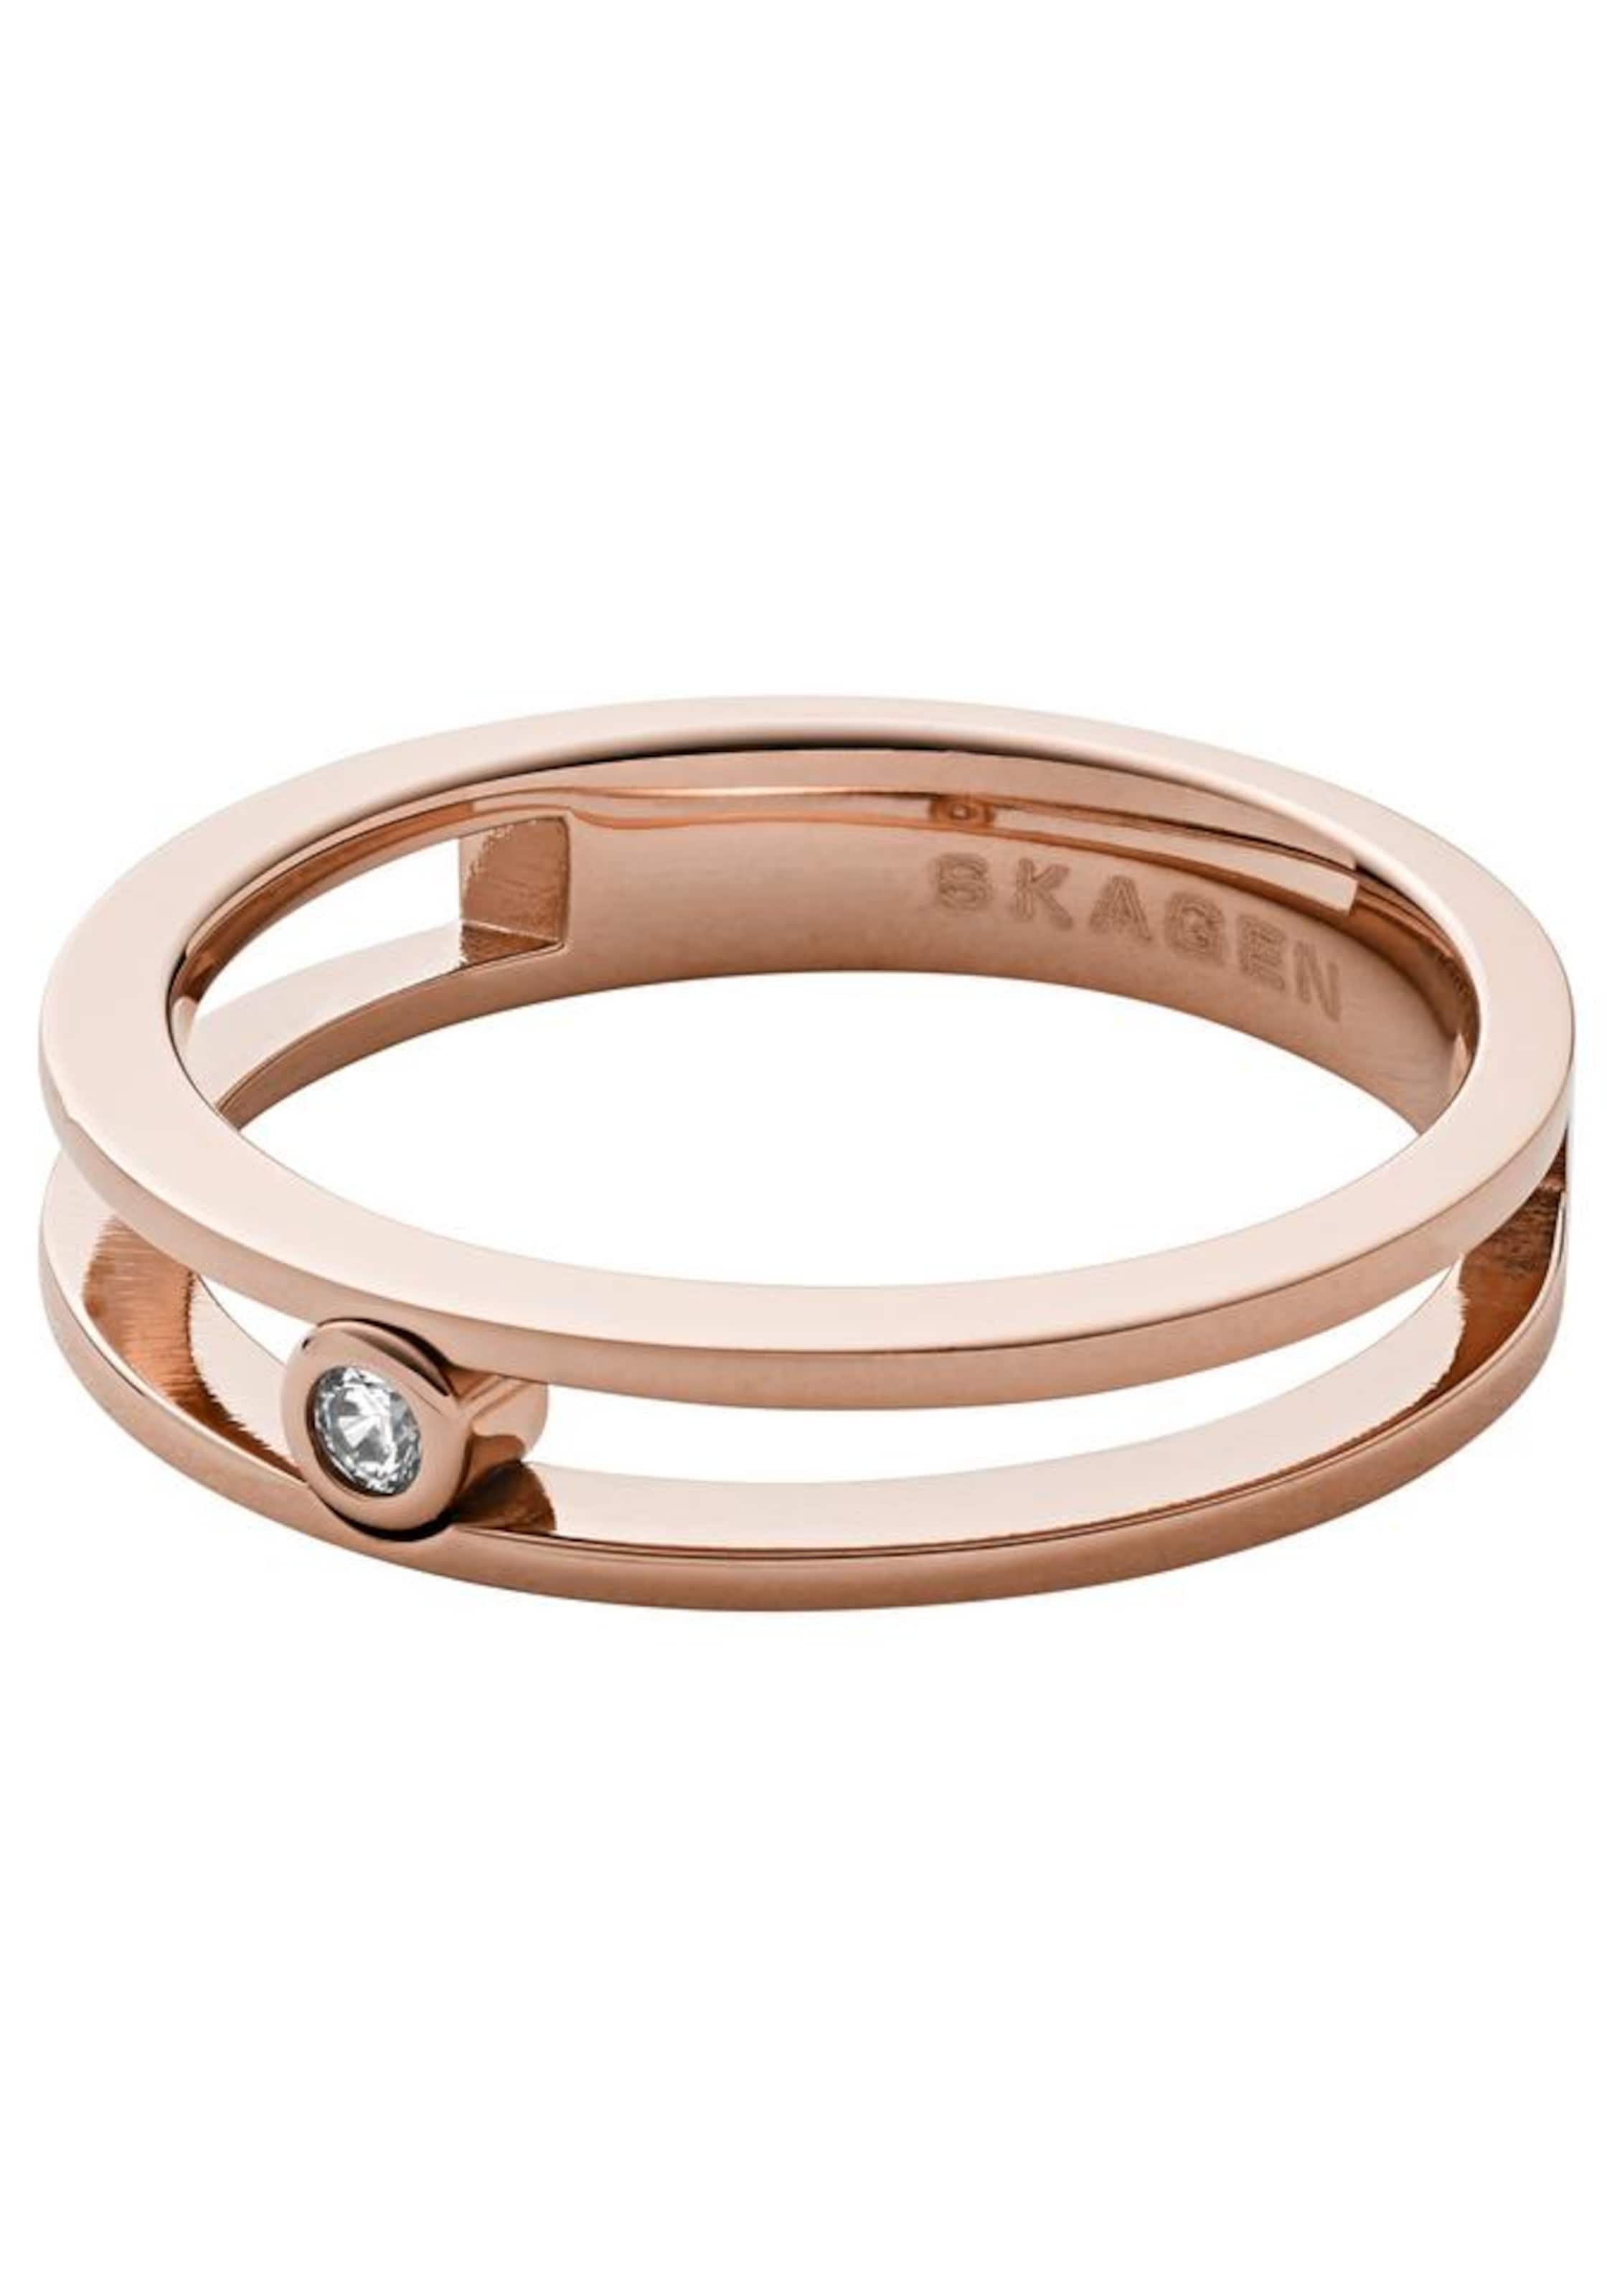 Rosegold Ring 'elin' Skagen In Ring Skagen KJcl1FT